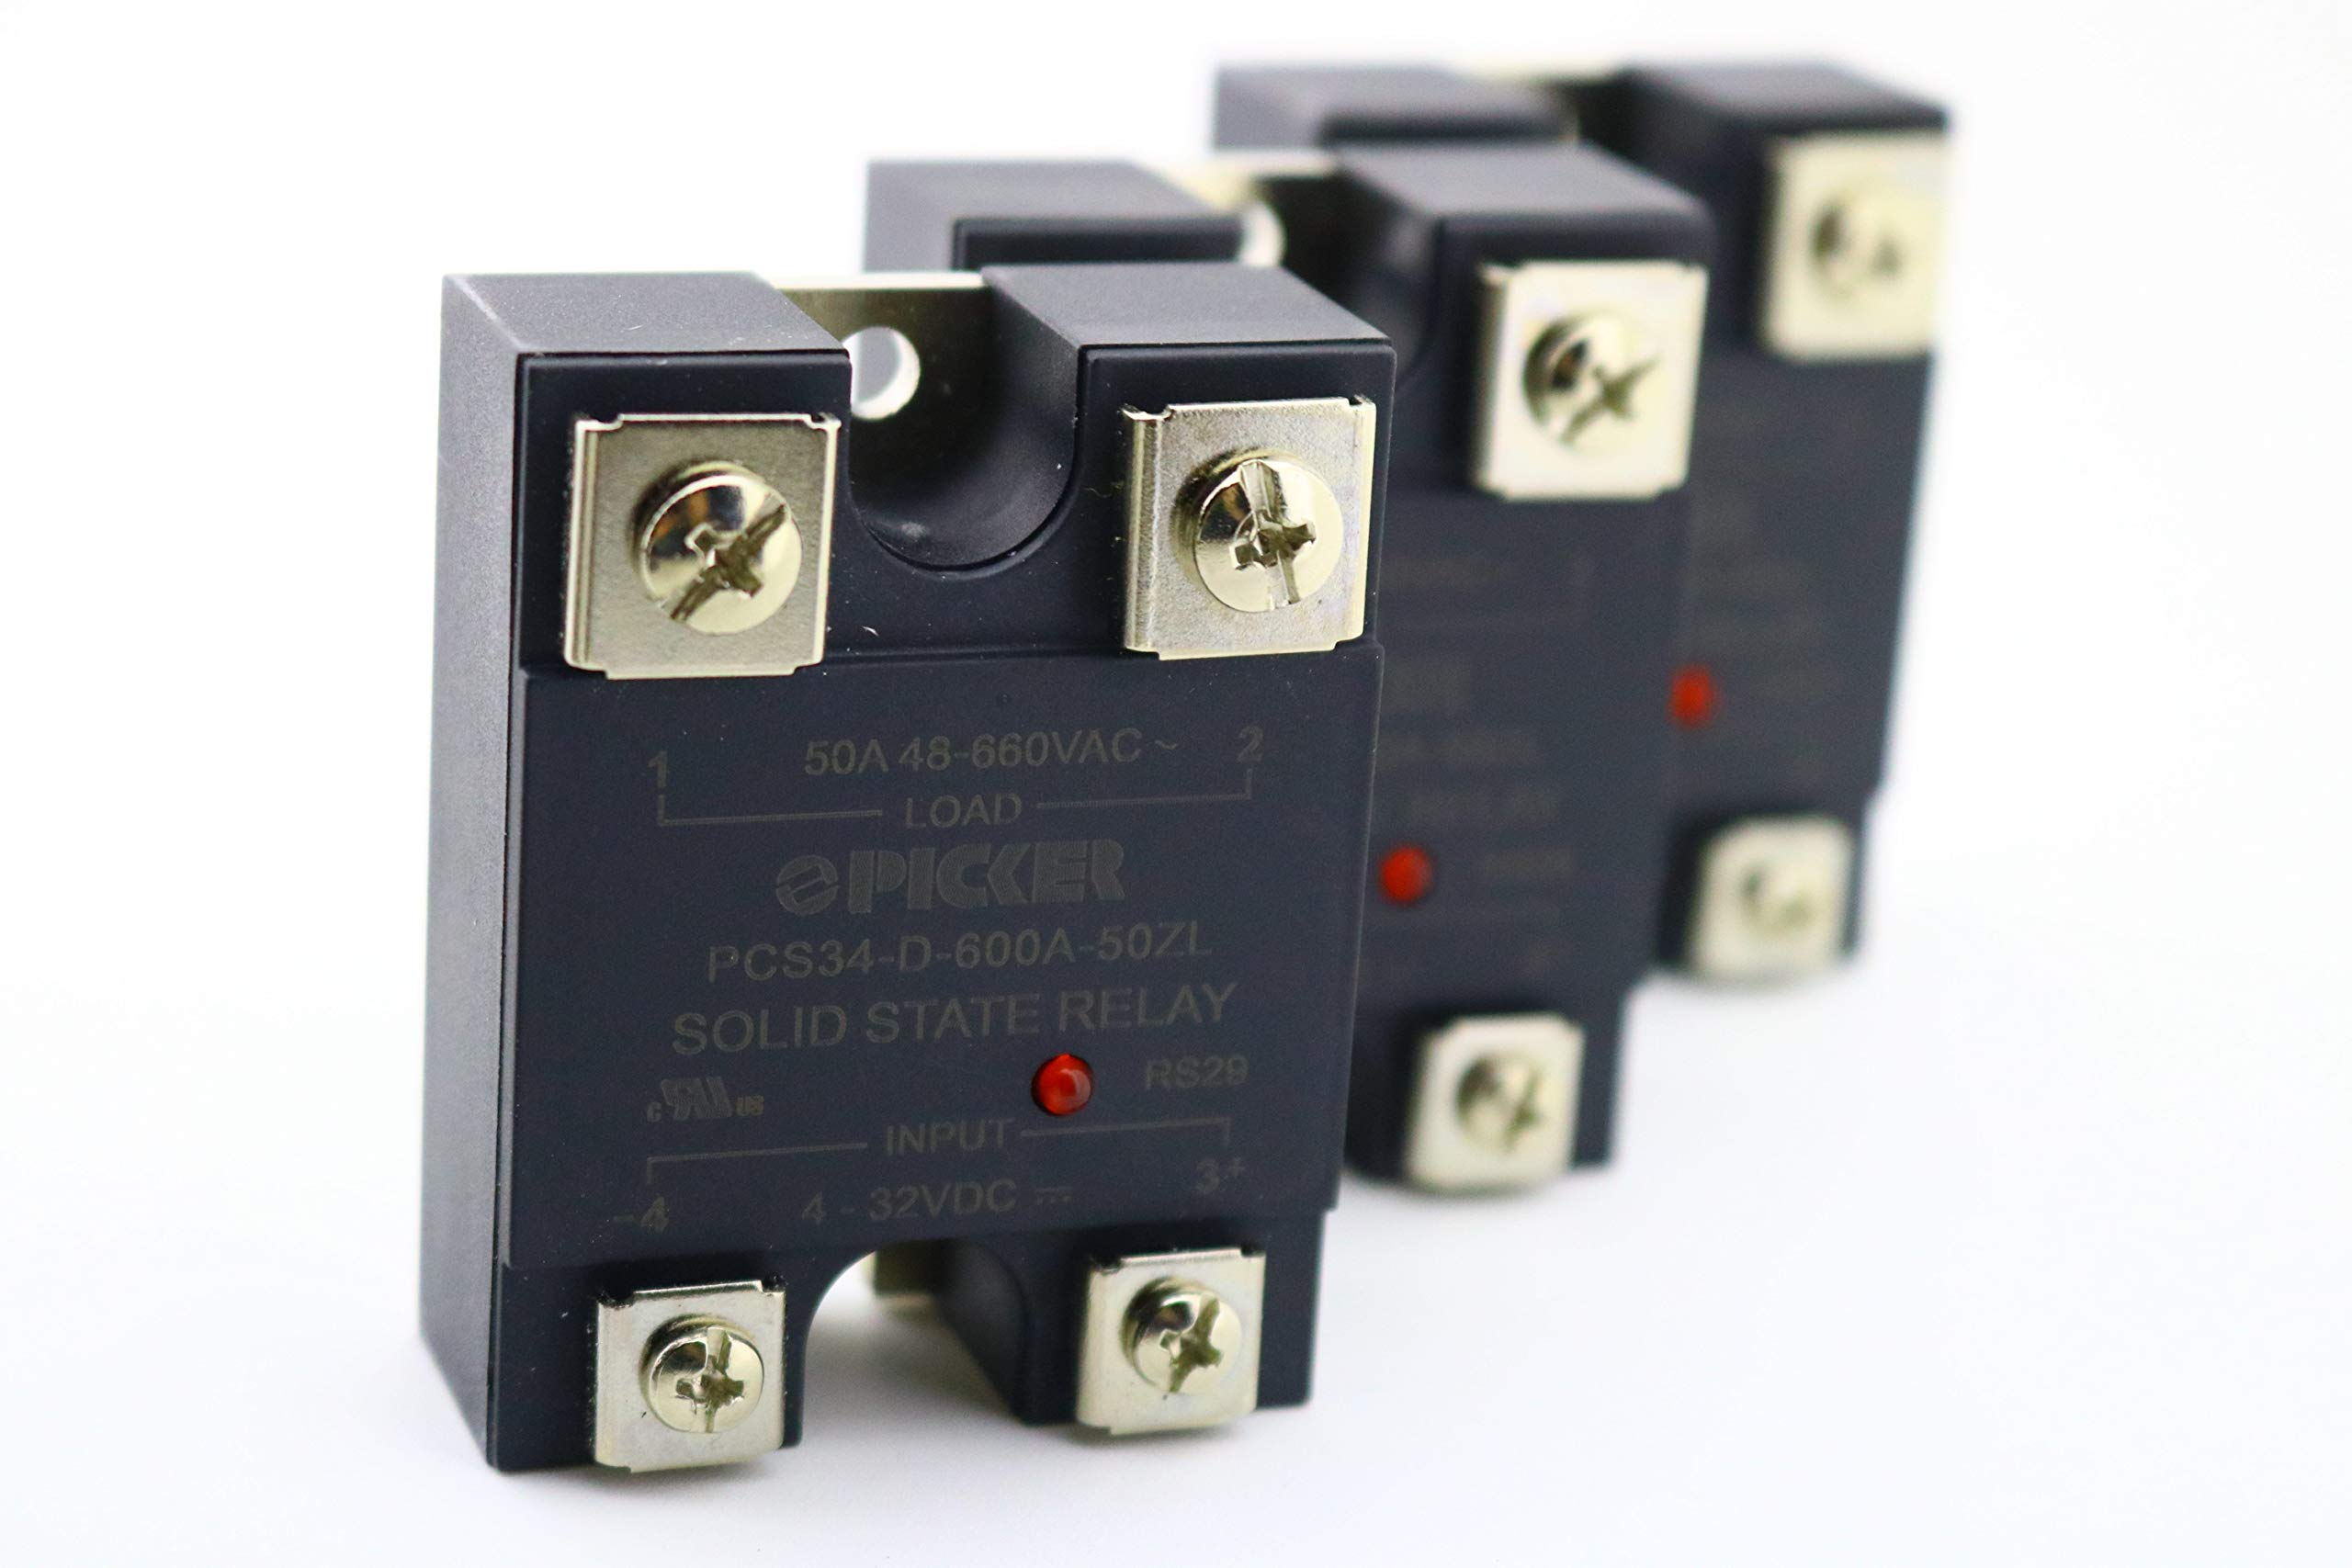 (x3) PCS34-D-600A-50ZL-3 | 50 Amp, 48-660 VAC Zero Crossing | UL Rated | 4-32 VDC Input | Hockey Puck Solid State Relay with LED by PICKER